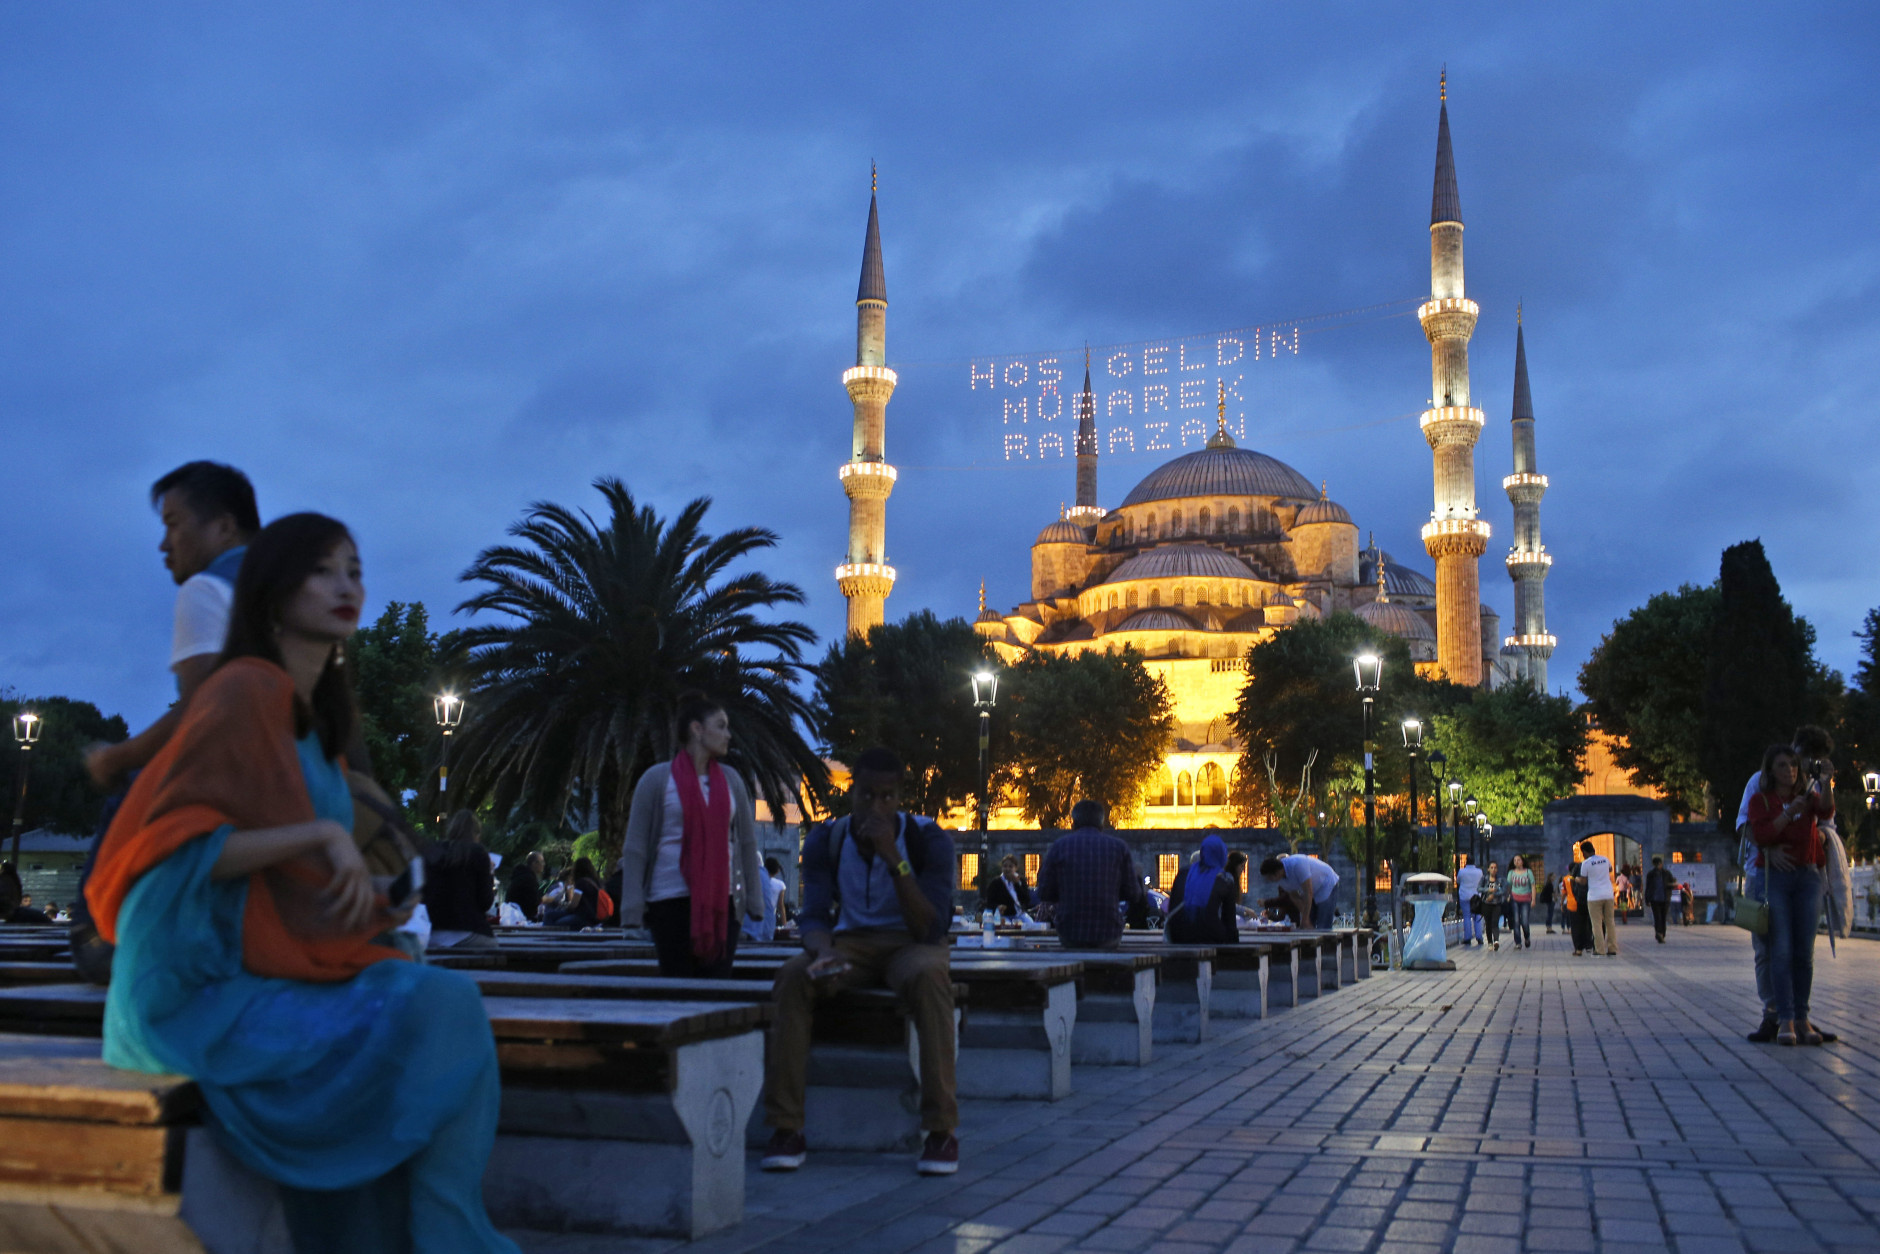 People gather backdroped by the the iconic Sultan Ahmed Mosque, better known as the Blue Mosque, decorated with lights marking the month of Ramadan, in the historic Sultanahmet district of Istanbul, Turkey, Thursday, June 18, 2015. The lights read in Turkish: 'Welcome Holy Ramadan'.  Muslims throughout the world are marking Ramadan - a month of fasting during which the observants abstain from food, drink and other pleasures from sunrise to sunset. After an obligatory sunset prayer, a large feast known as 'iftar' is shared with family and friends. (AP Photo/Emrah Gurel)